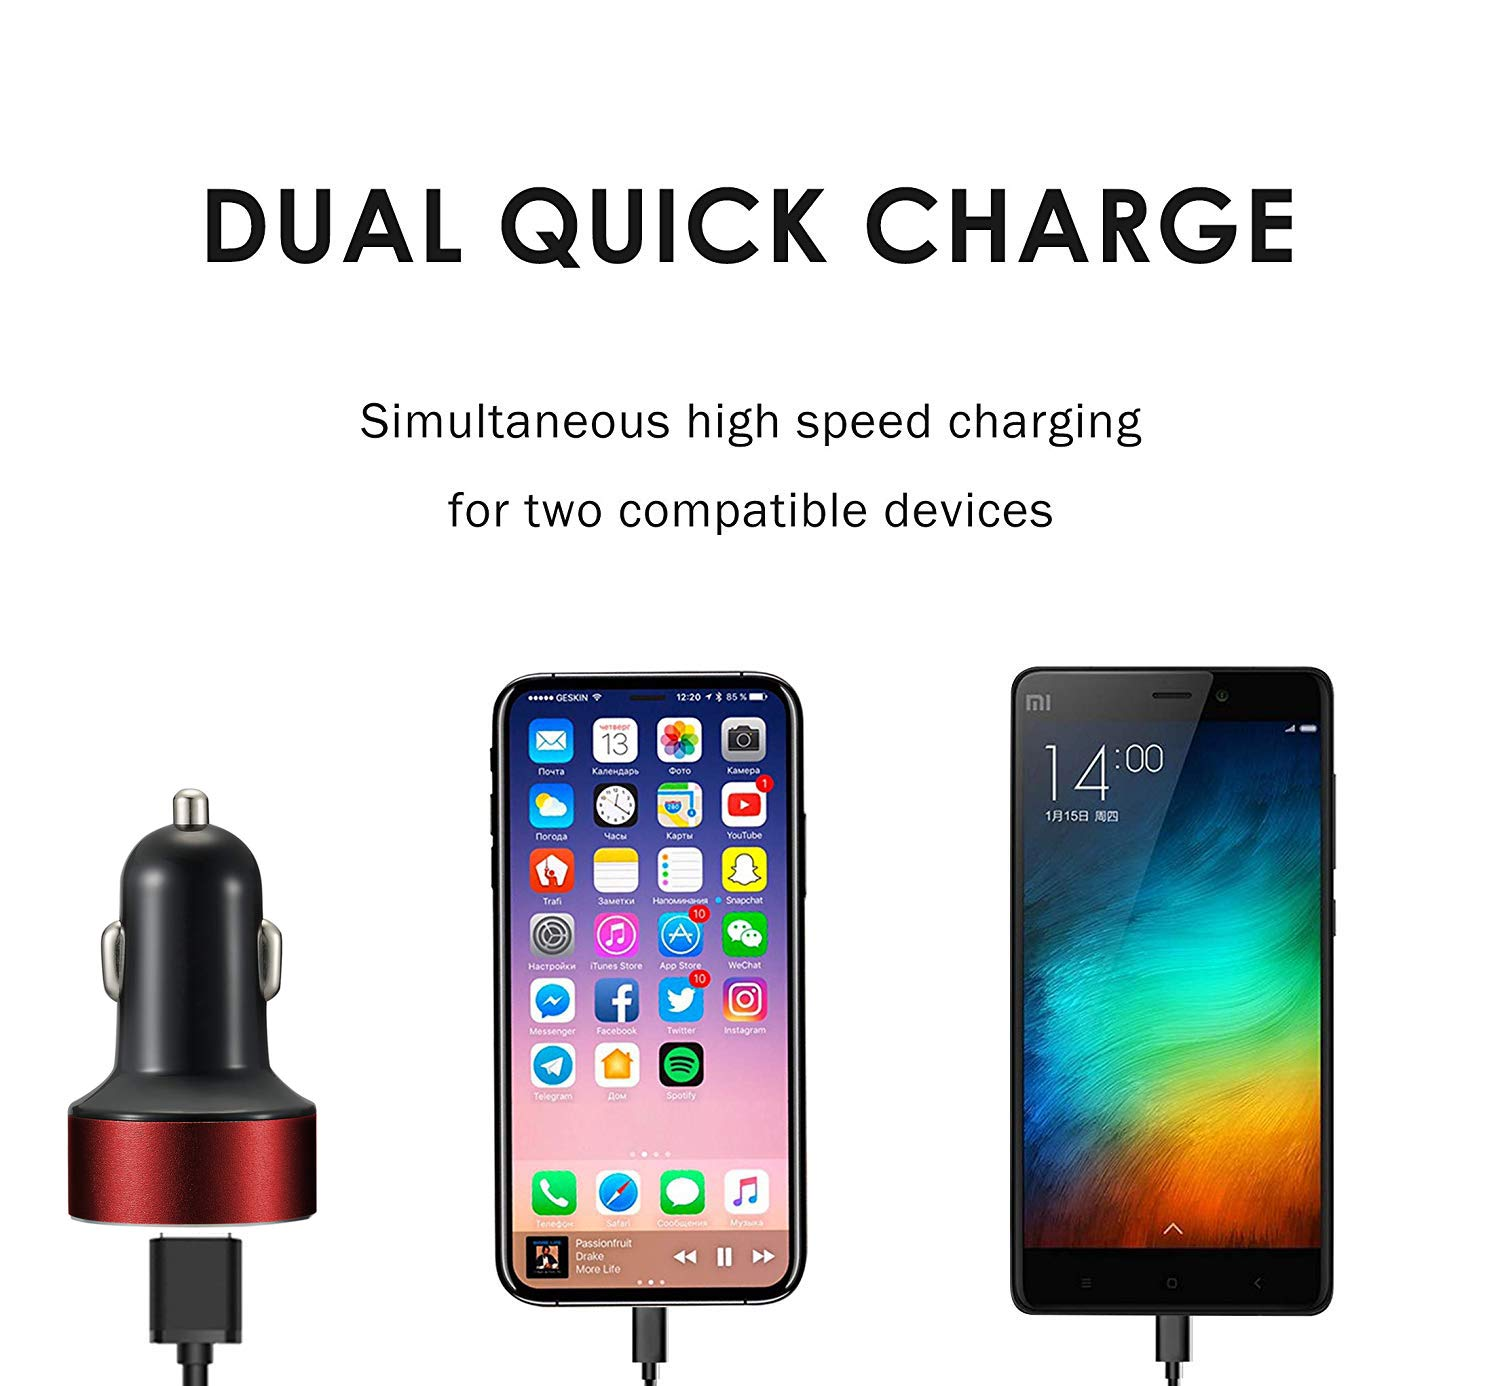 Samsung Galaxy Note8//S8//S8+ and More Silver PGWHITC Car Charger MOLJILA 4.8A 24W Dual USB Fast Car Charger with Smart Identification for iPhone X//8//7//Plus iPad Pro//Air 2//Mini